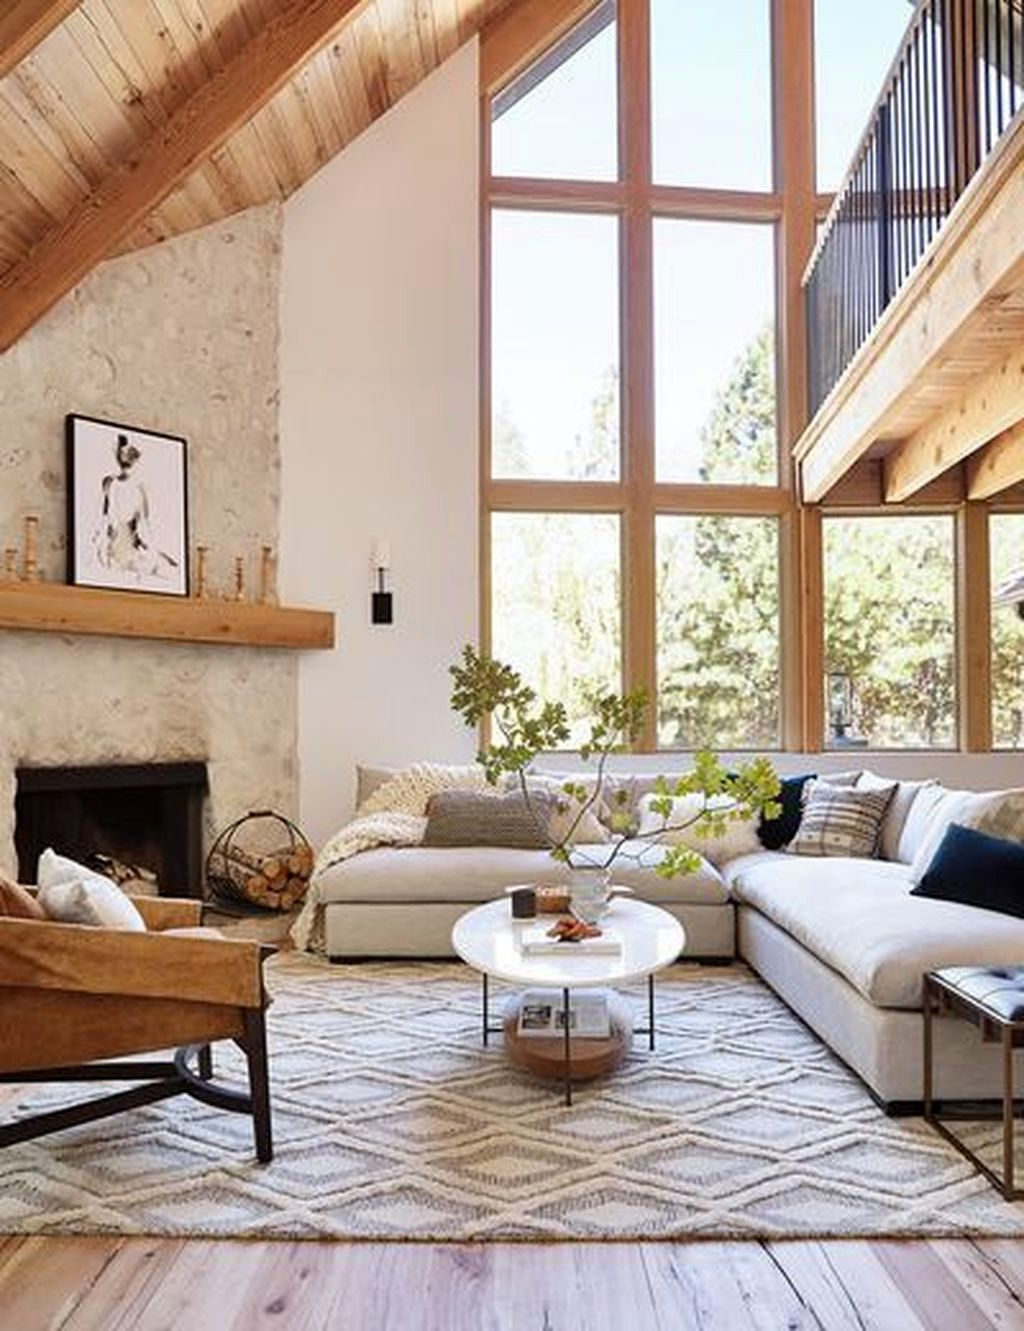 29 Wonderful Winter Rugs Design Ideas For Living Room Decor 18 Best Inspiration Ideas That You Want In 2020 Modern Rustic Living Room Rustic Living Room Hotel Interiors